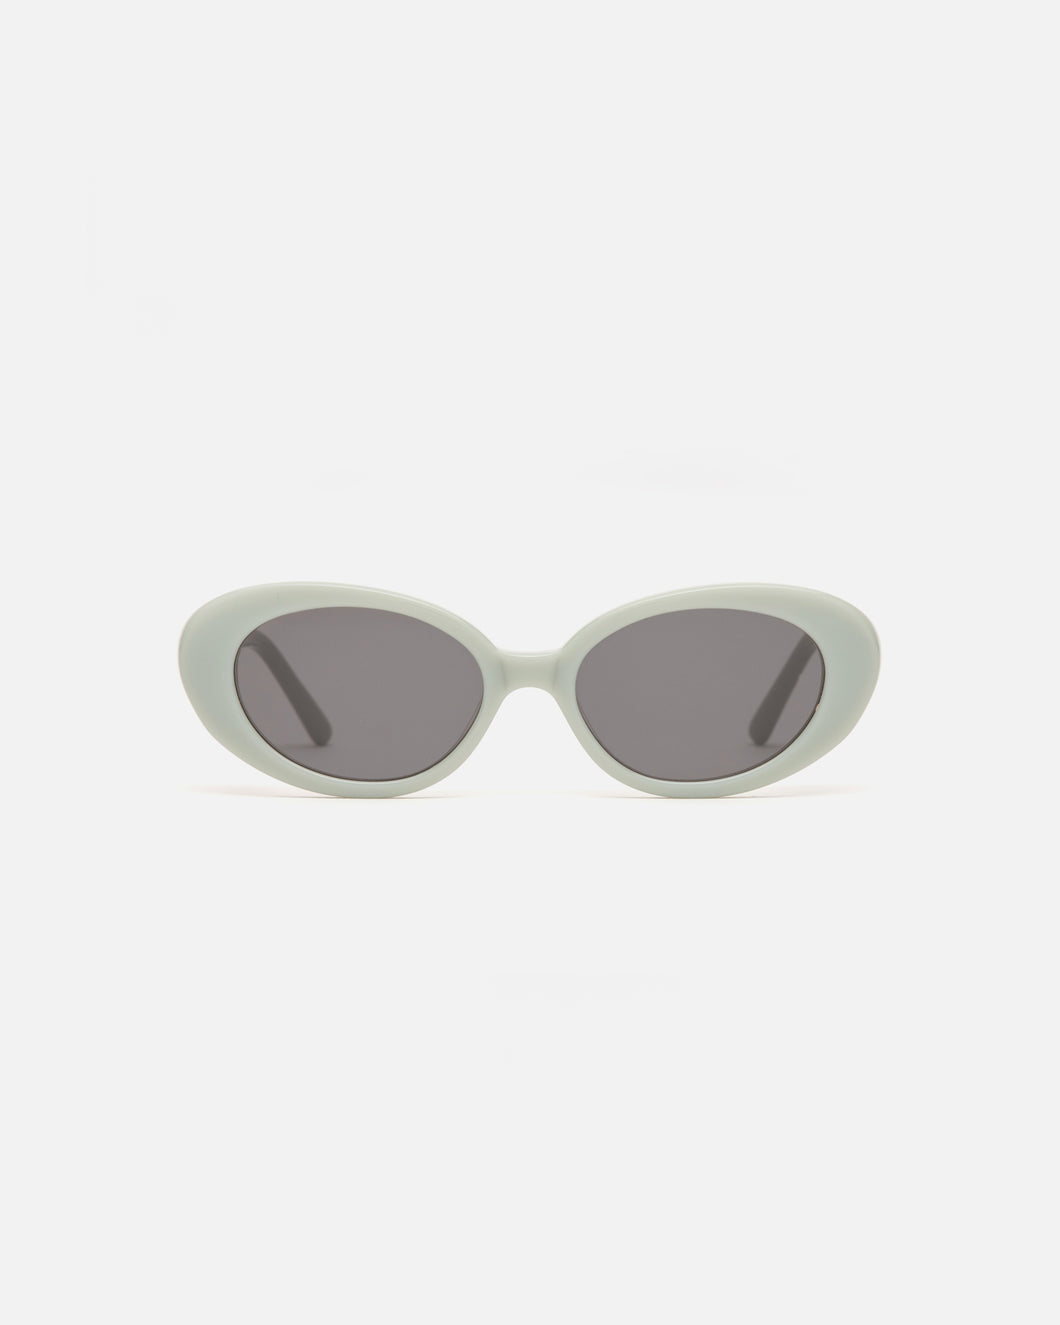 Lu Goldie Jeanne round Sunglasses in sage blue acetate with black lenses, front image